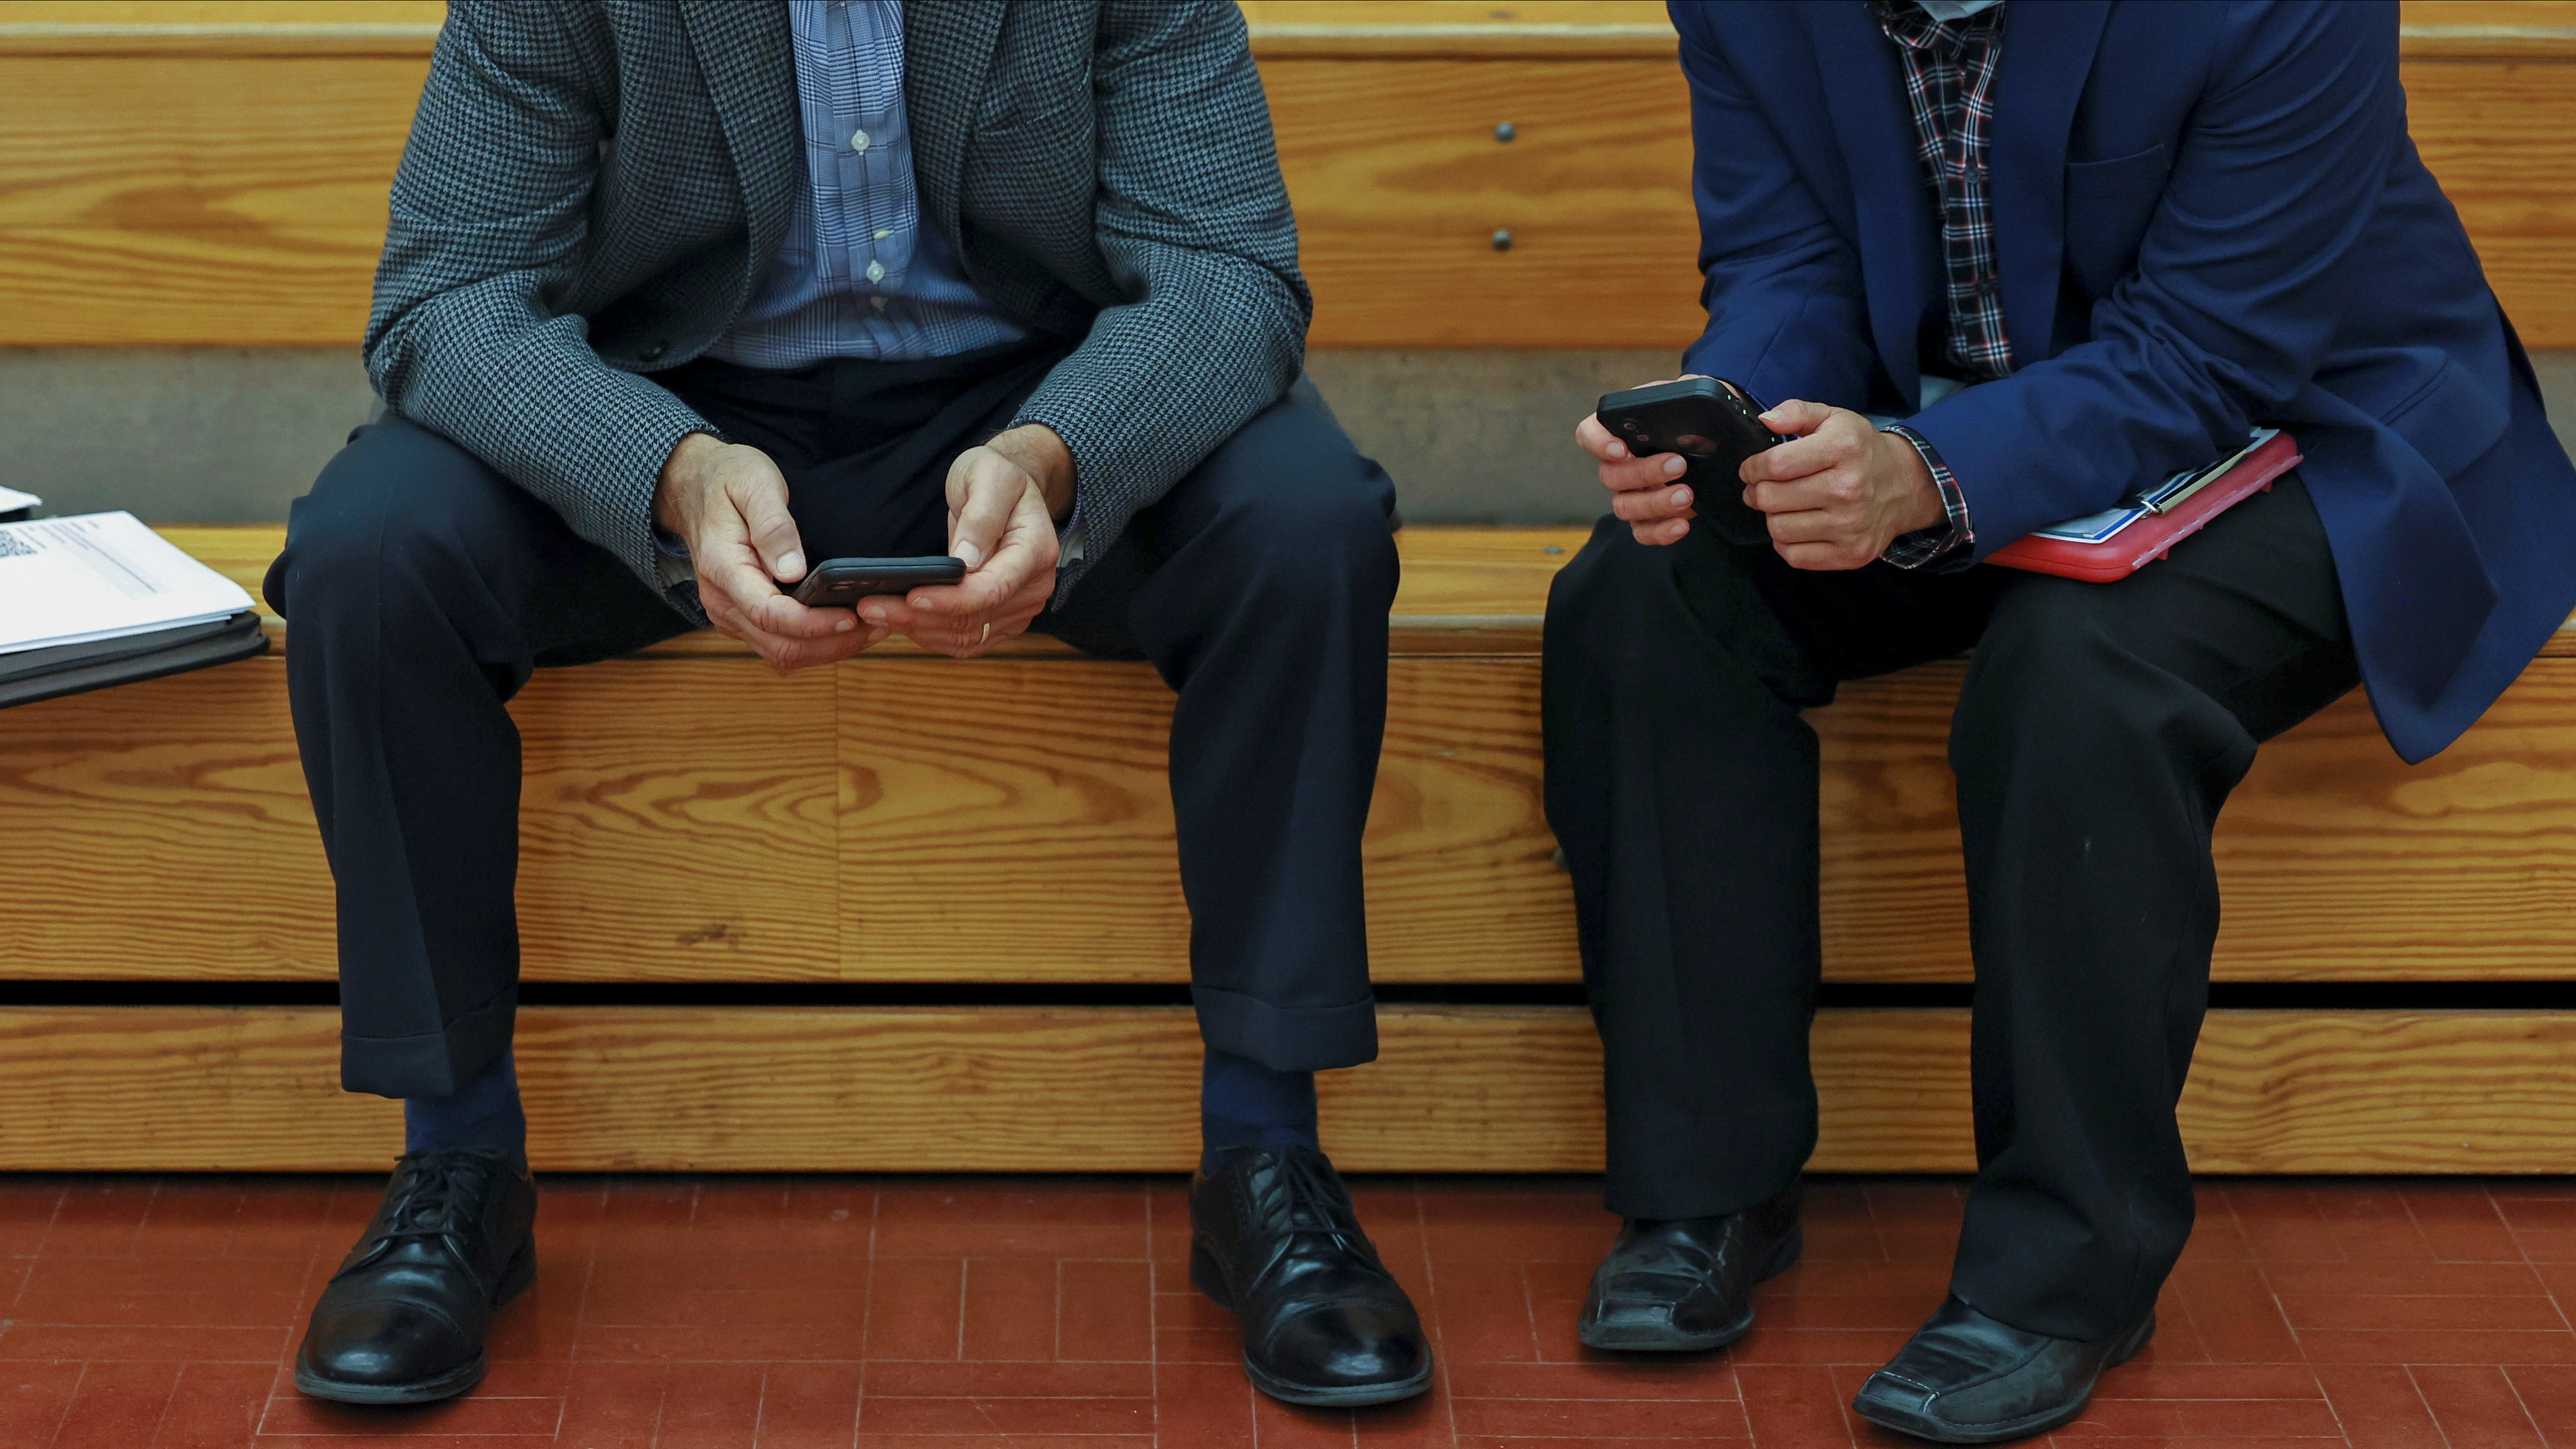 men in suits look at their phones while at a job fair